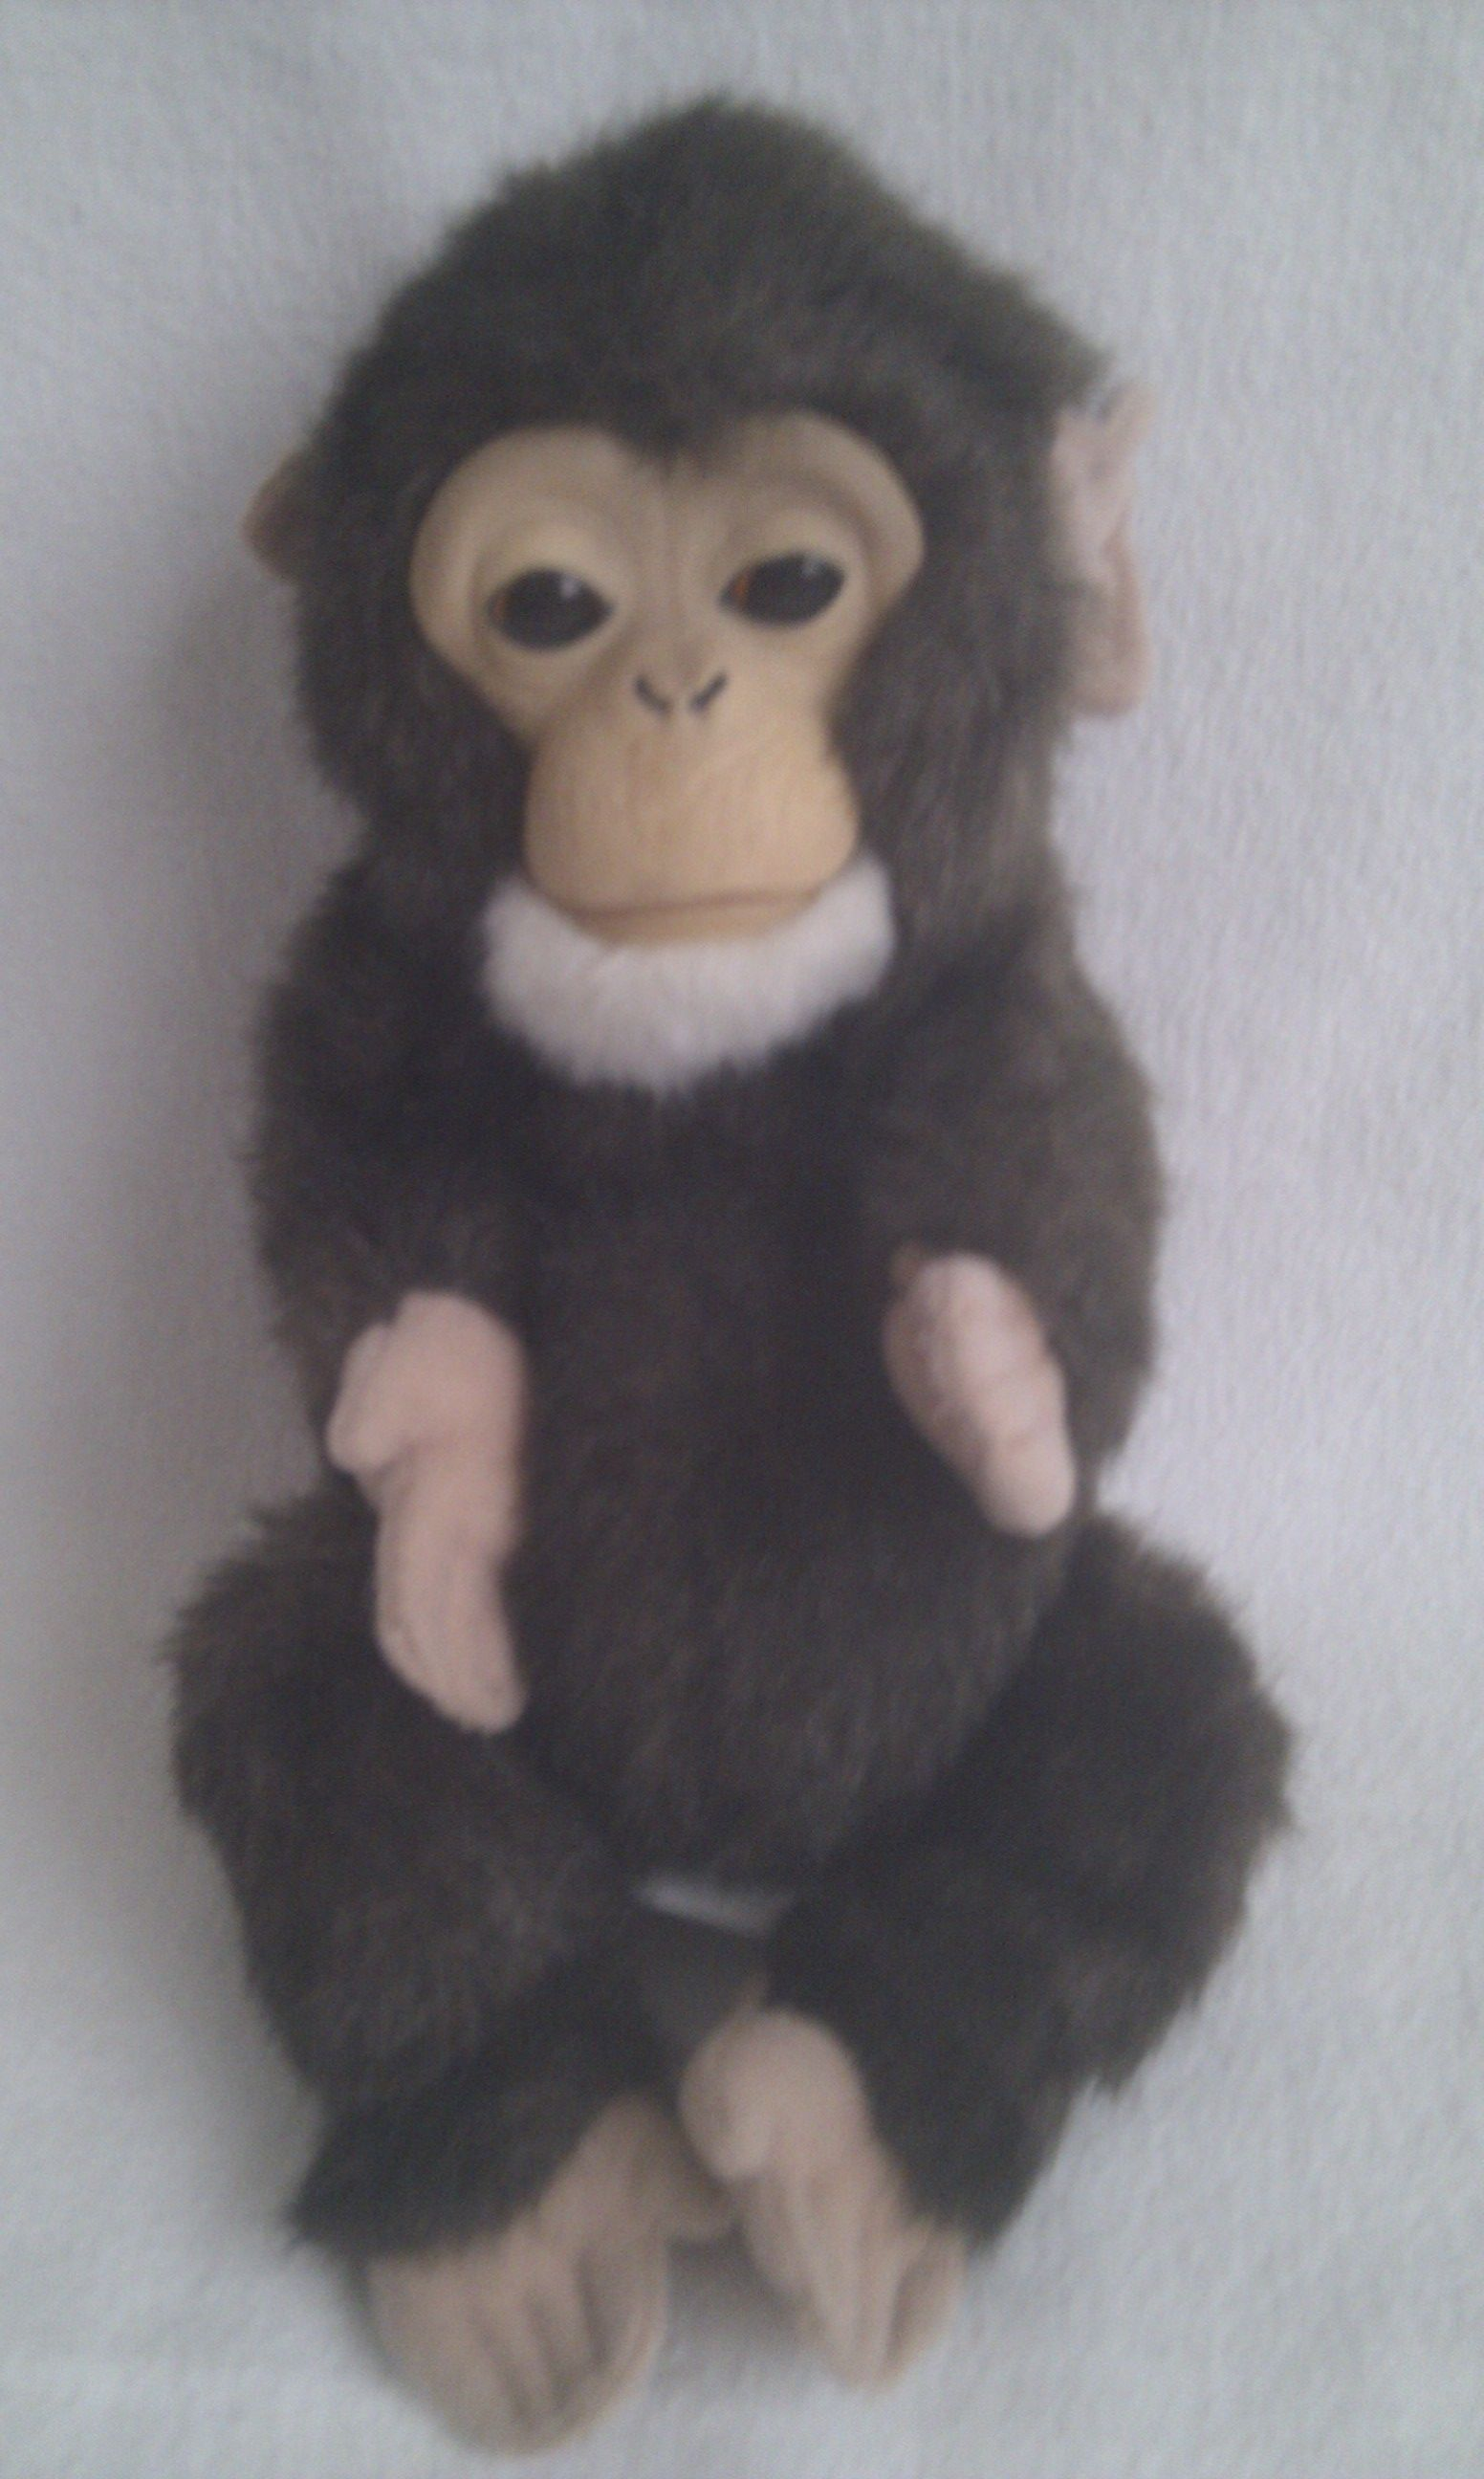 Adorable Newborn Baby Chimp Fur Real Monkey Plush Toy Makes